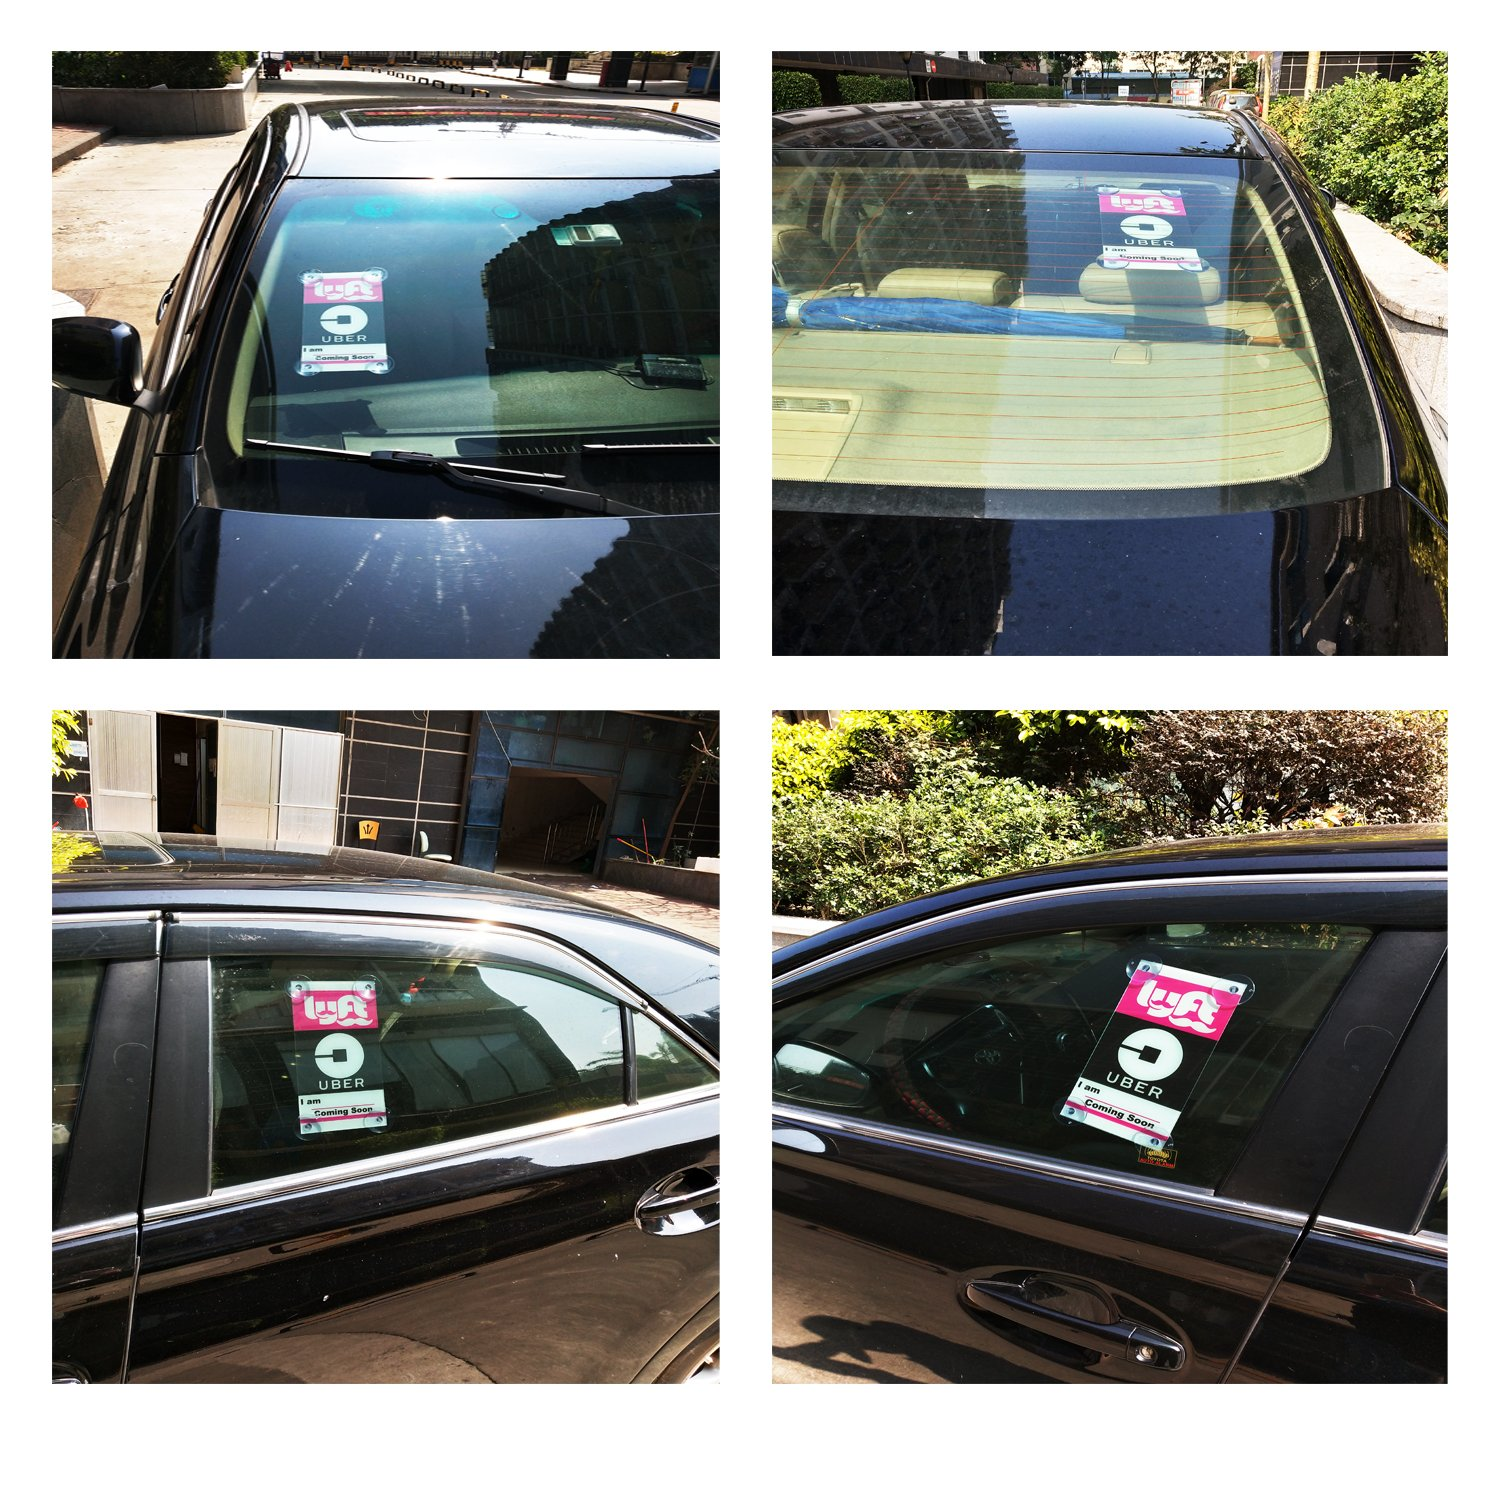 RUN HELIX UBER Lyft Removable Largest Sign Decal 2 Pack New Uber Lyft Logo Laminated with Bigger Suction Cups